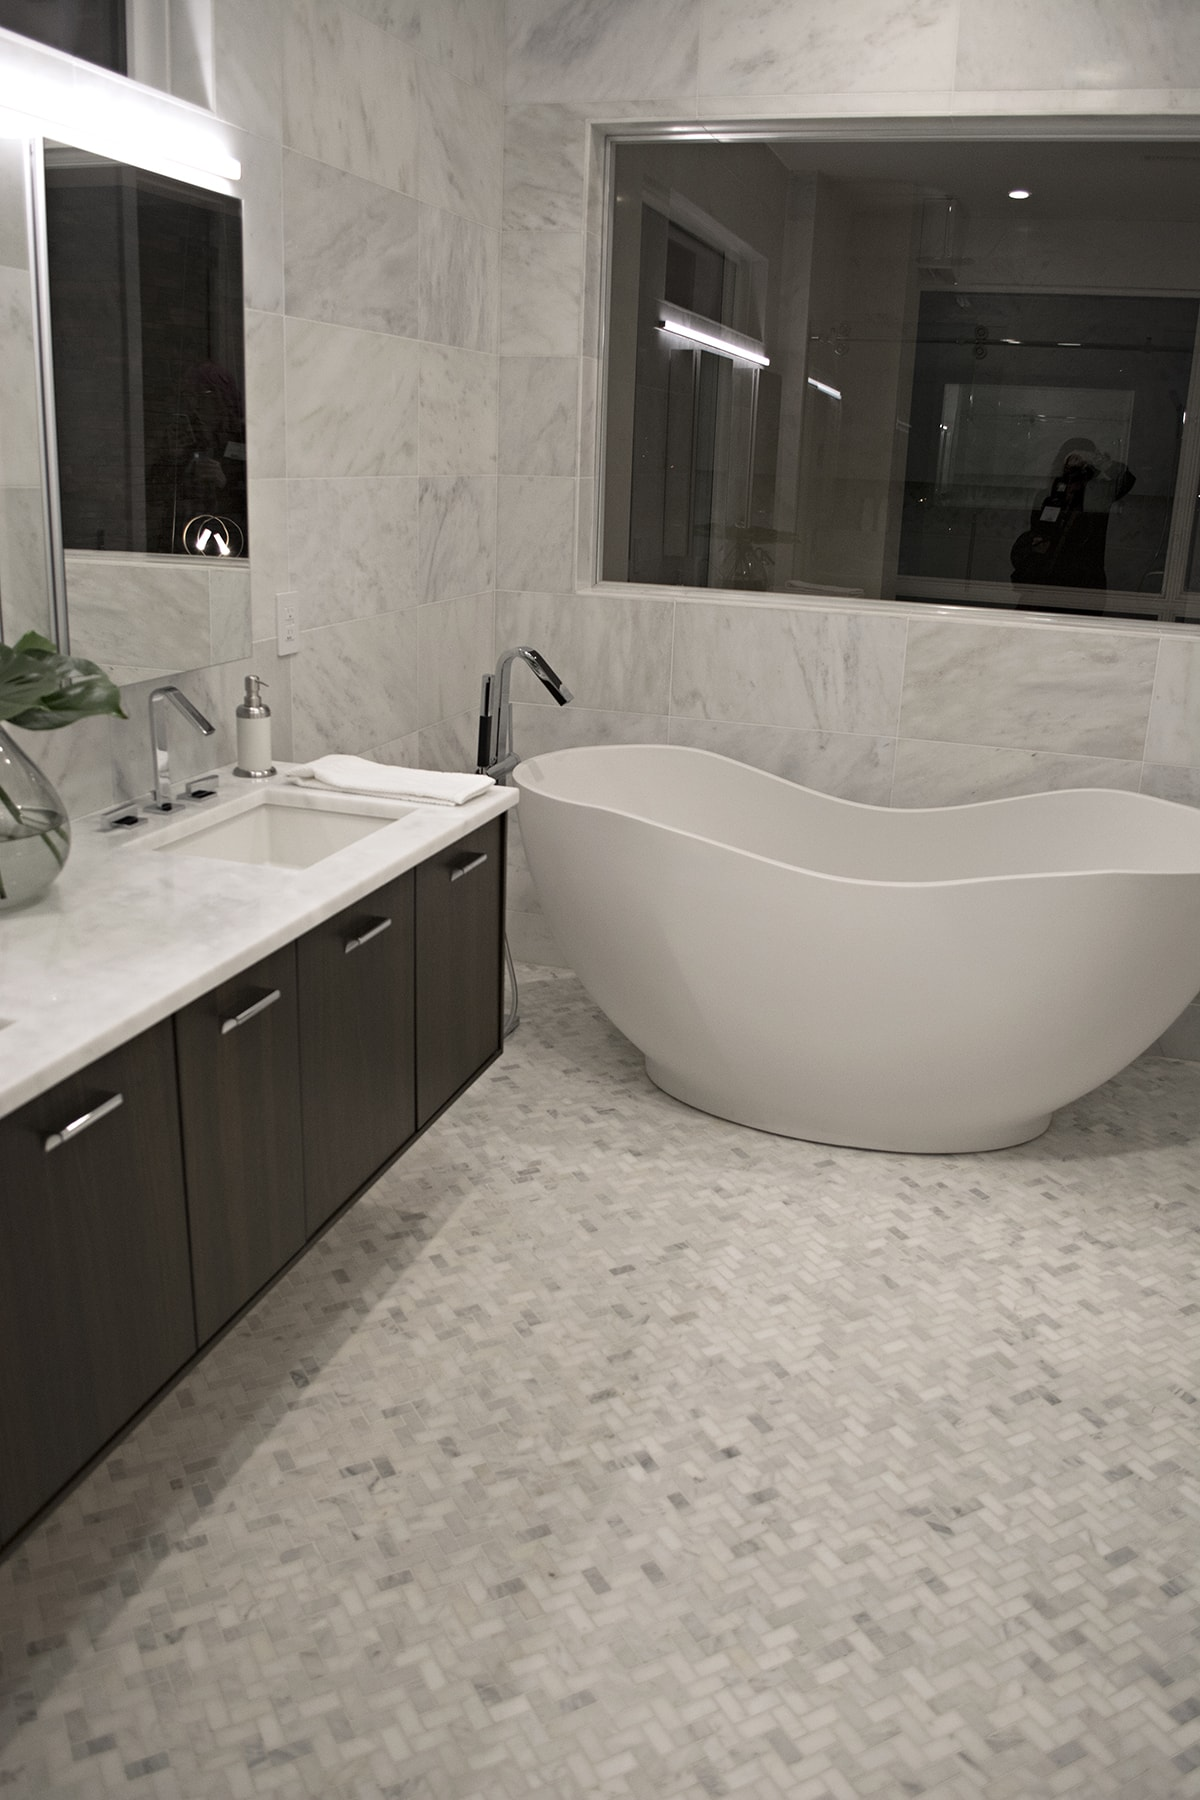 freestanding soaker tub in white marble bathroom